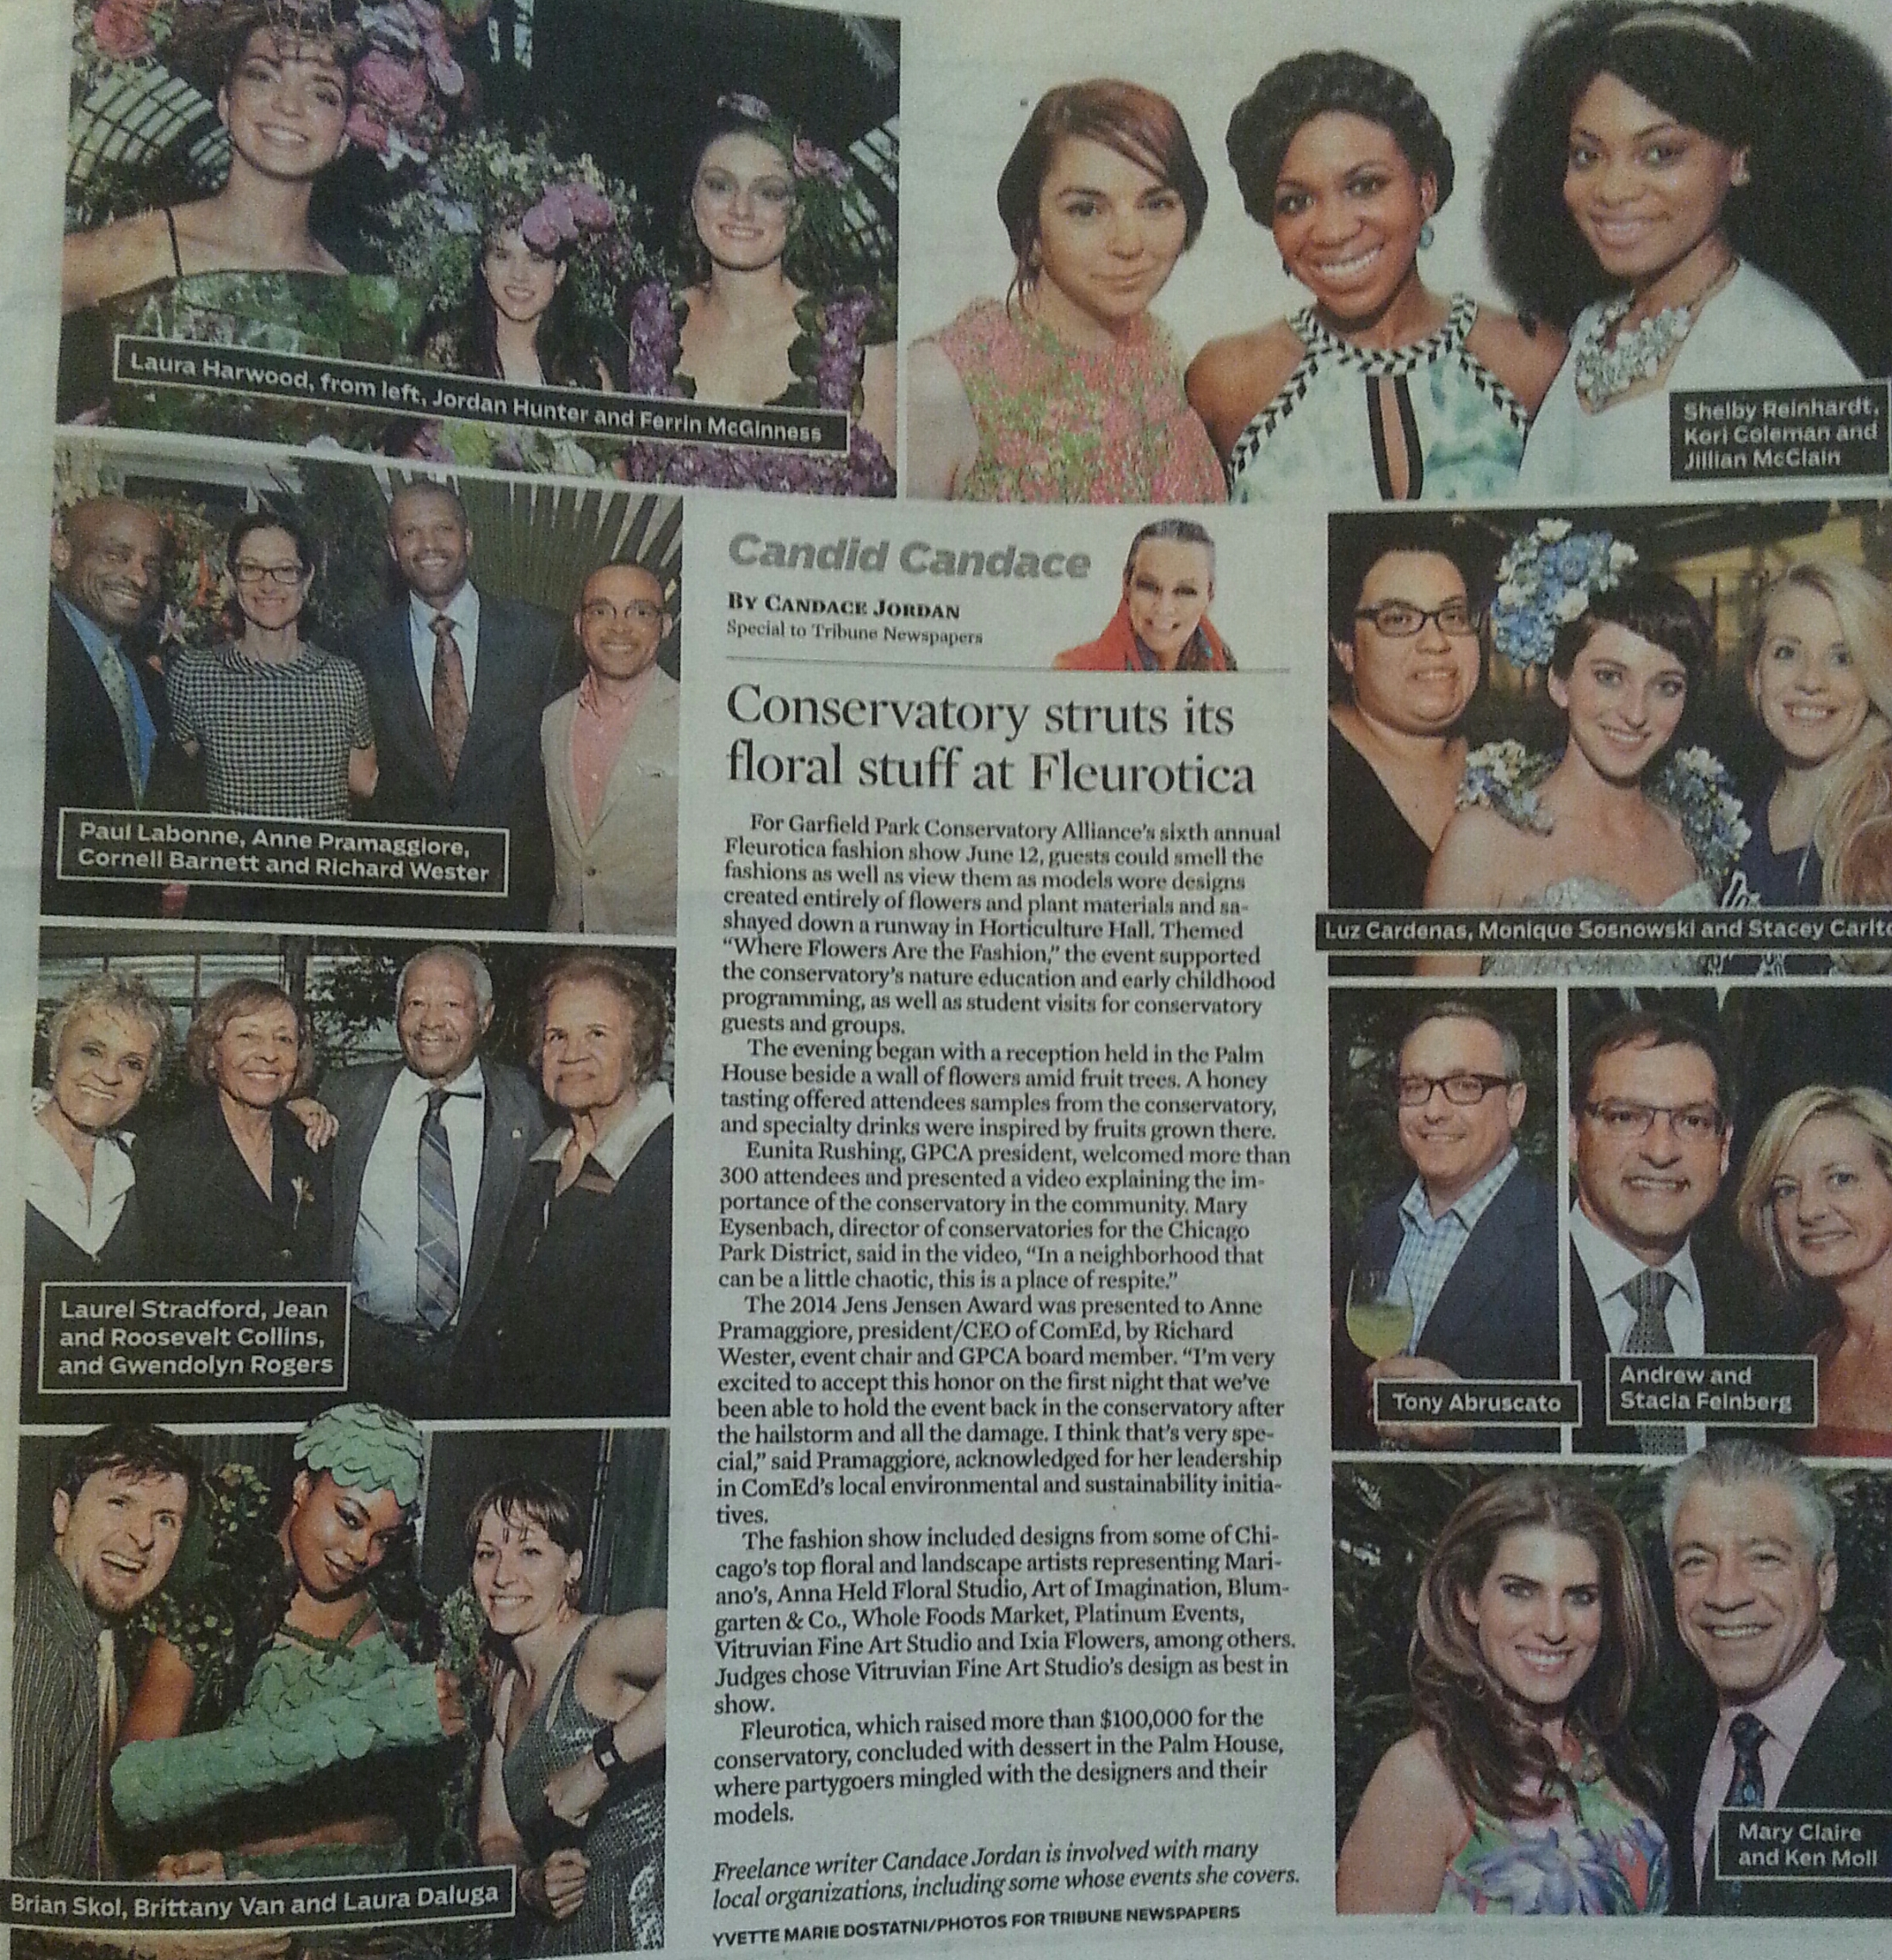 Candid Candace's Article for The Chicago Tribune. Coverage of Fleurotica2014